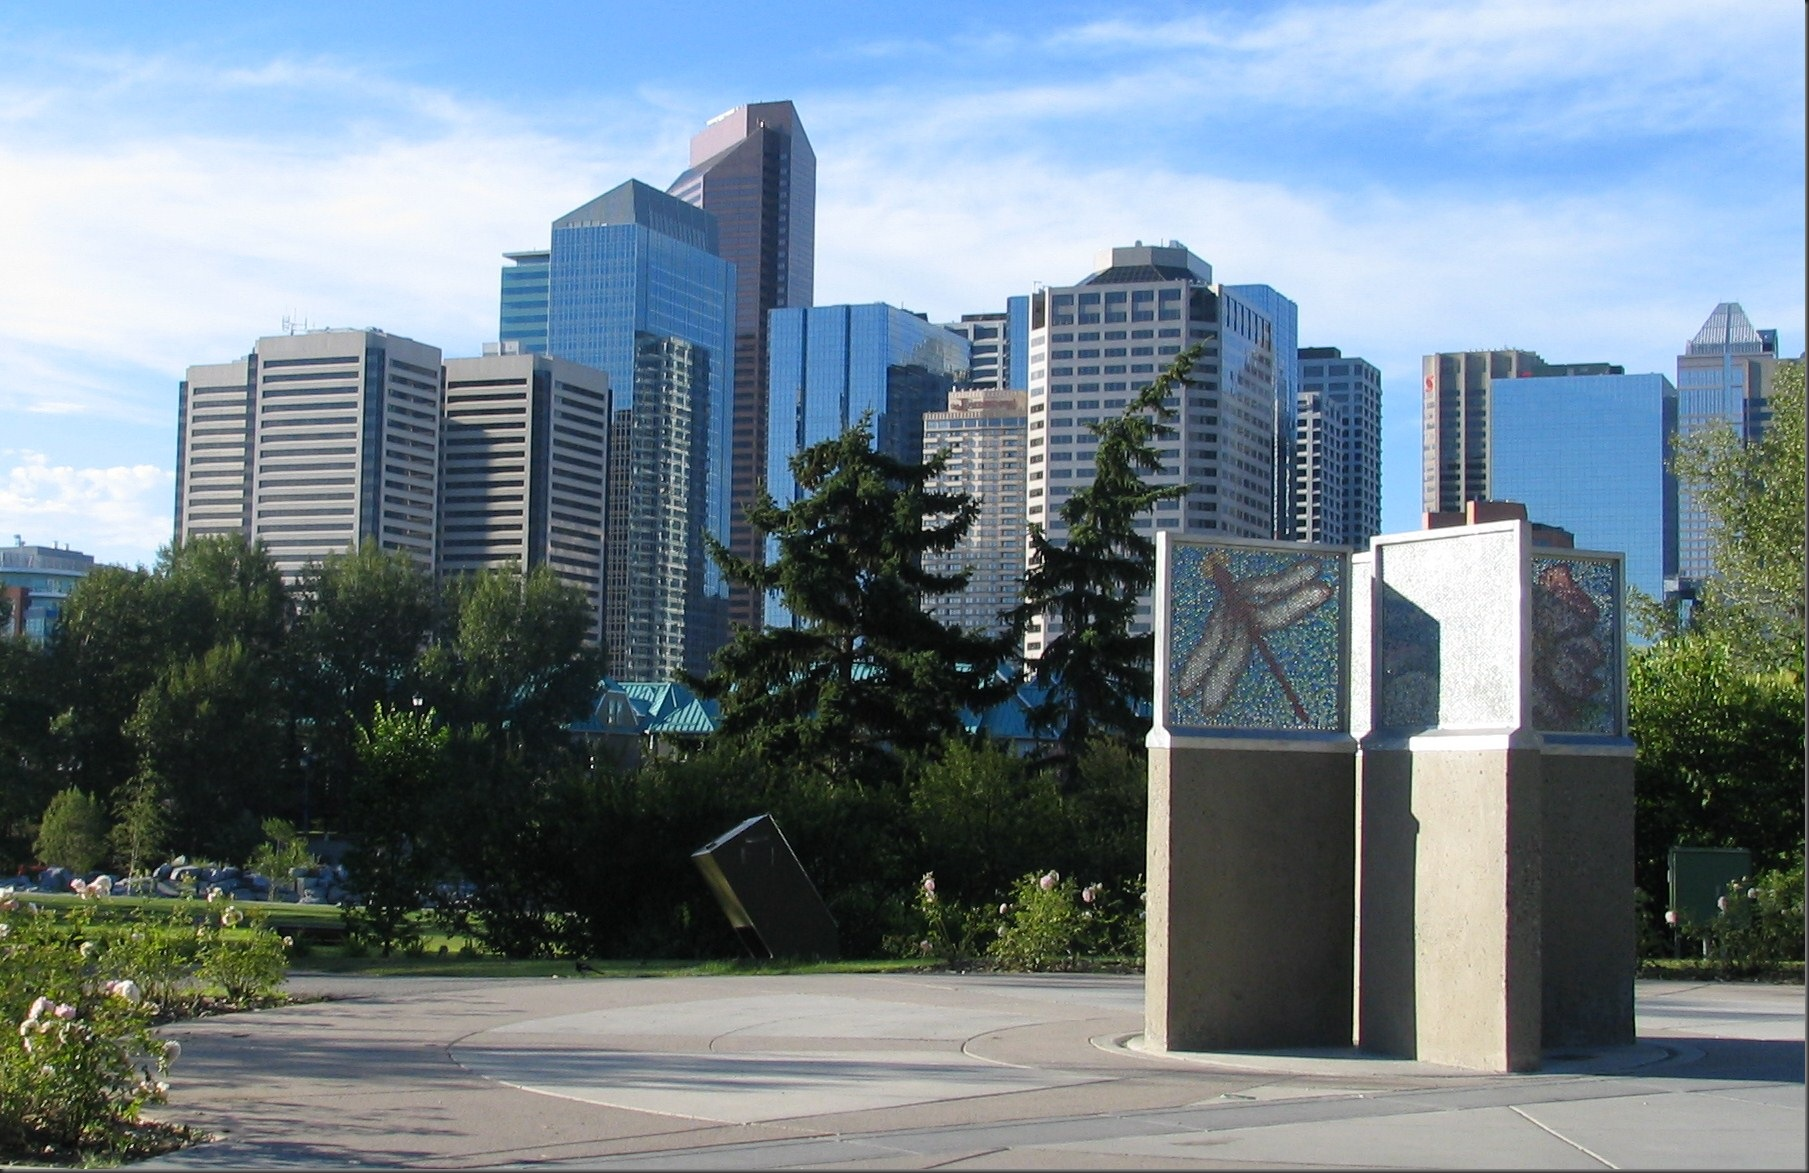 Downtown Calgary, Alberta - Bruce Witzel photo